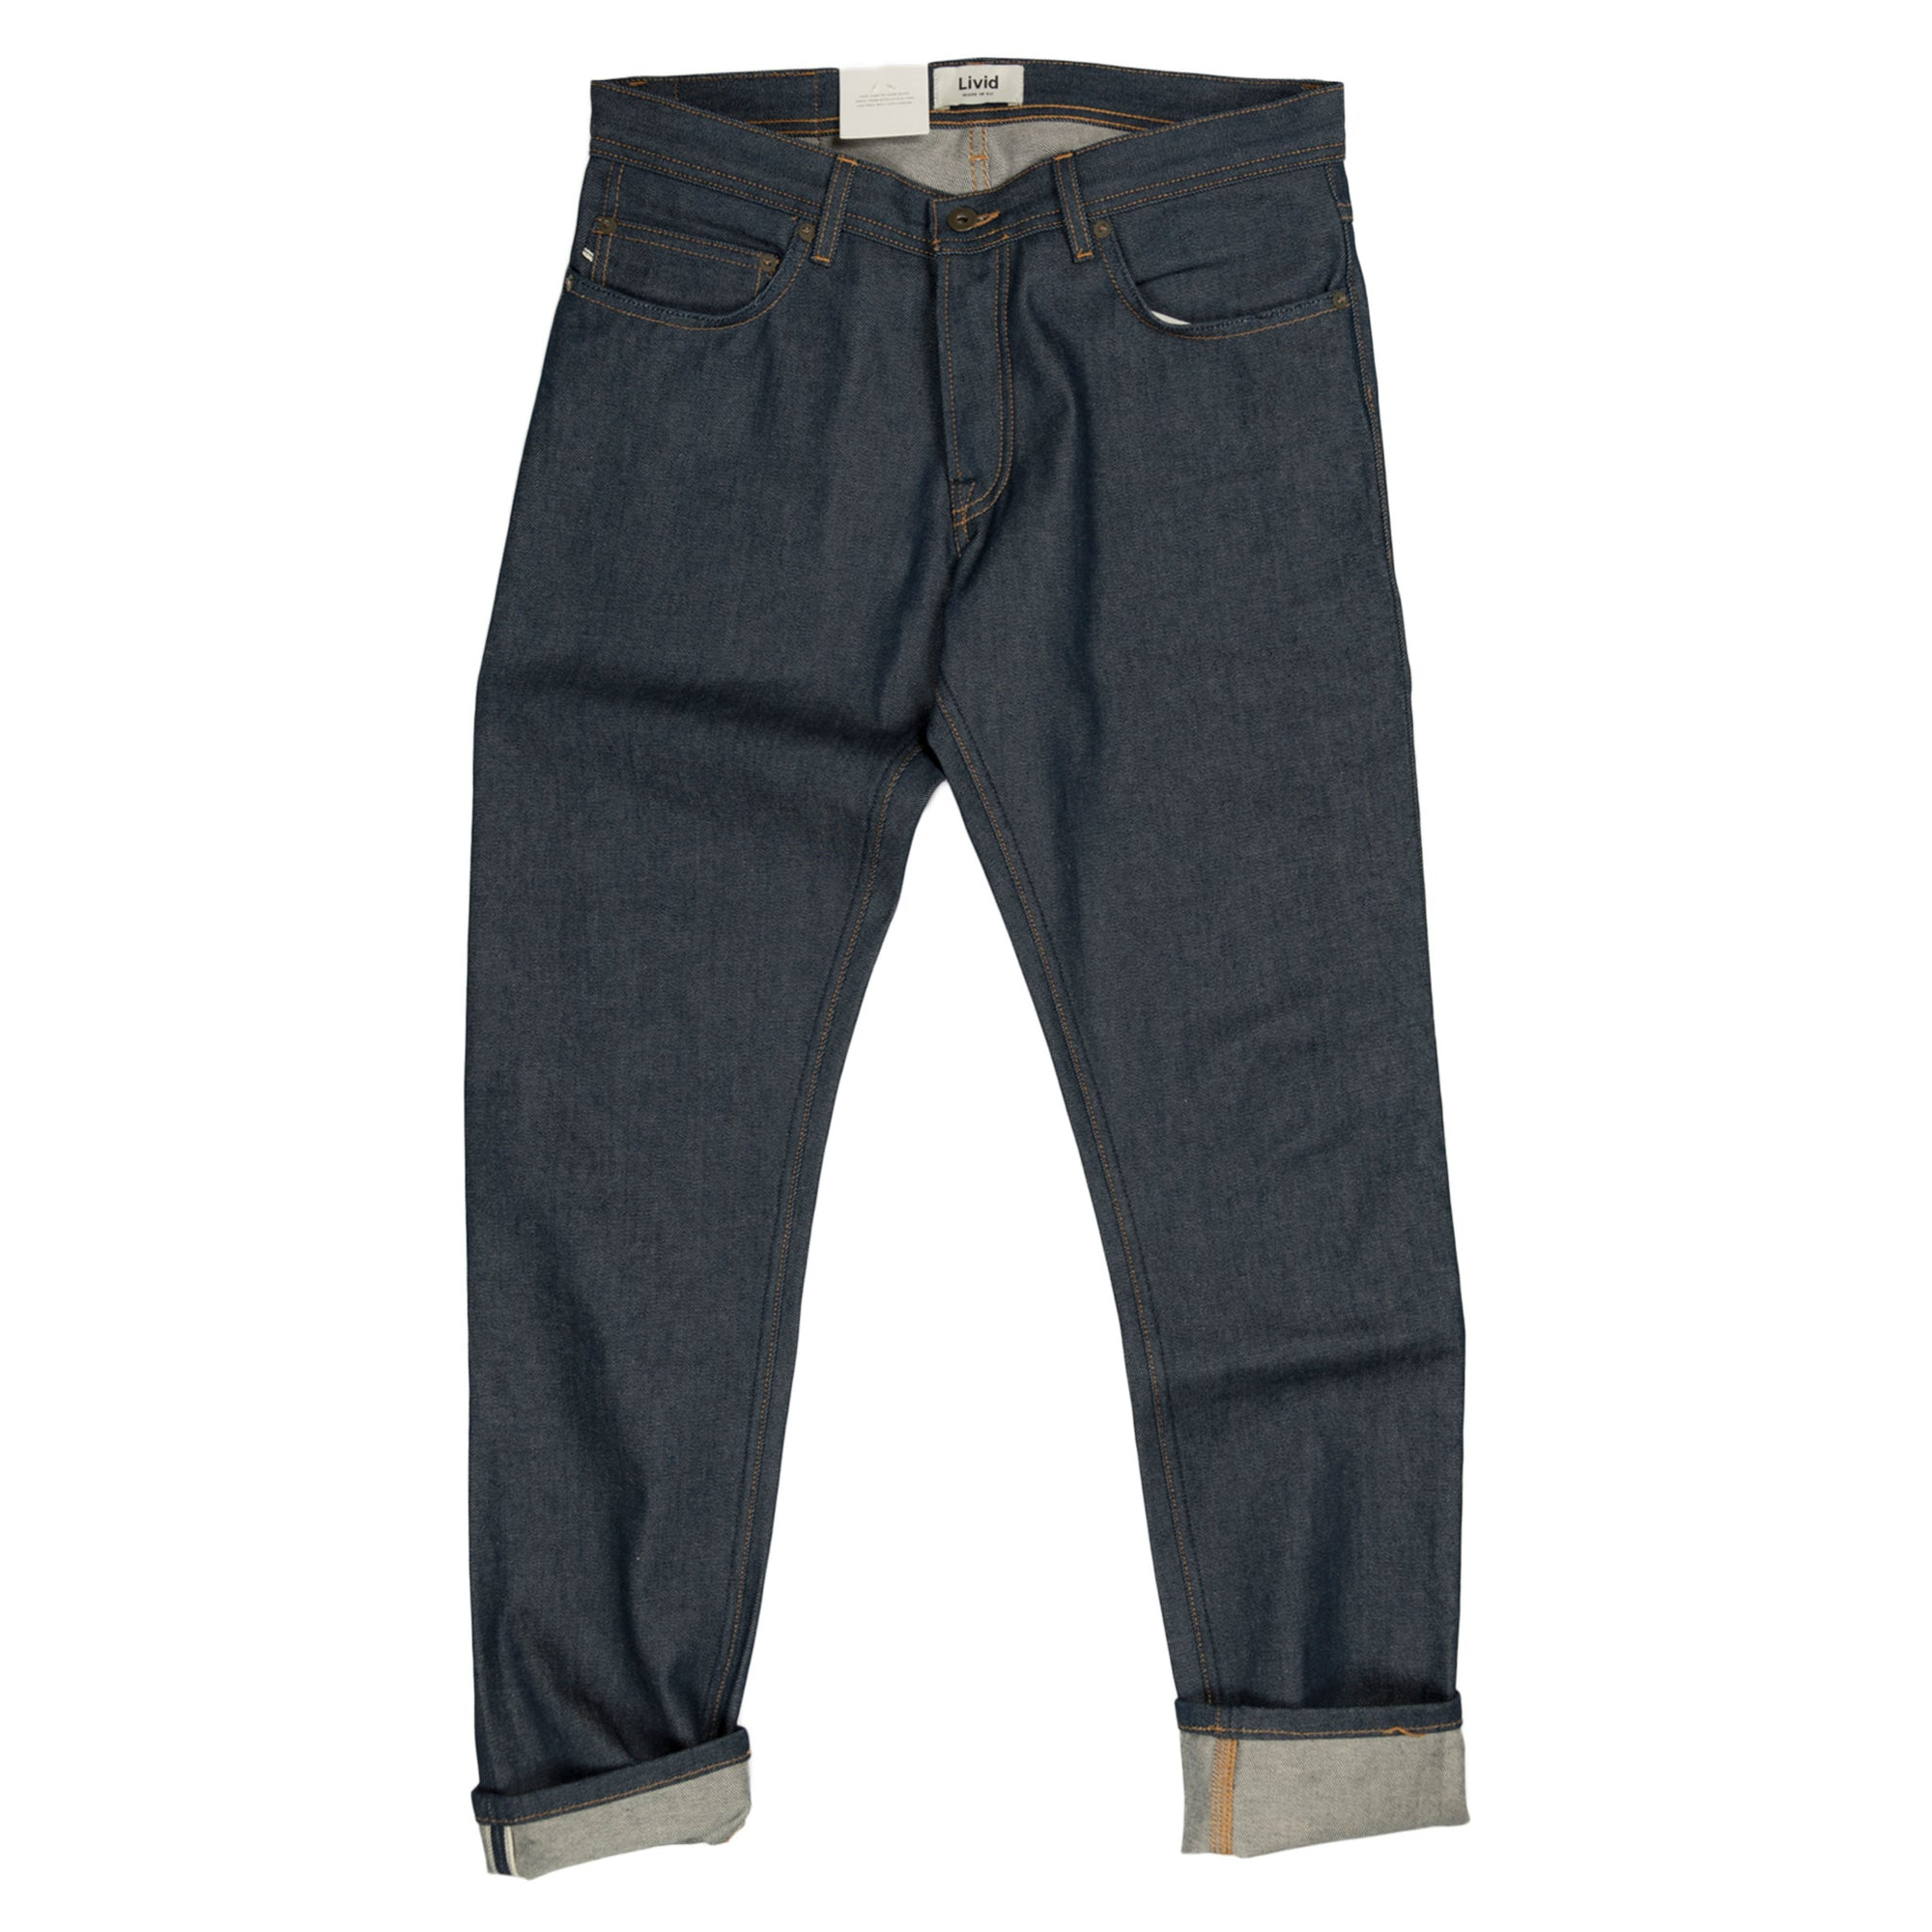 livid jone slim japan blue selvage